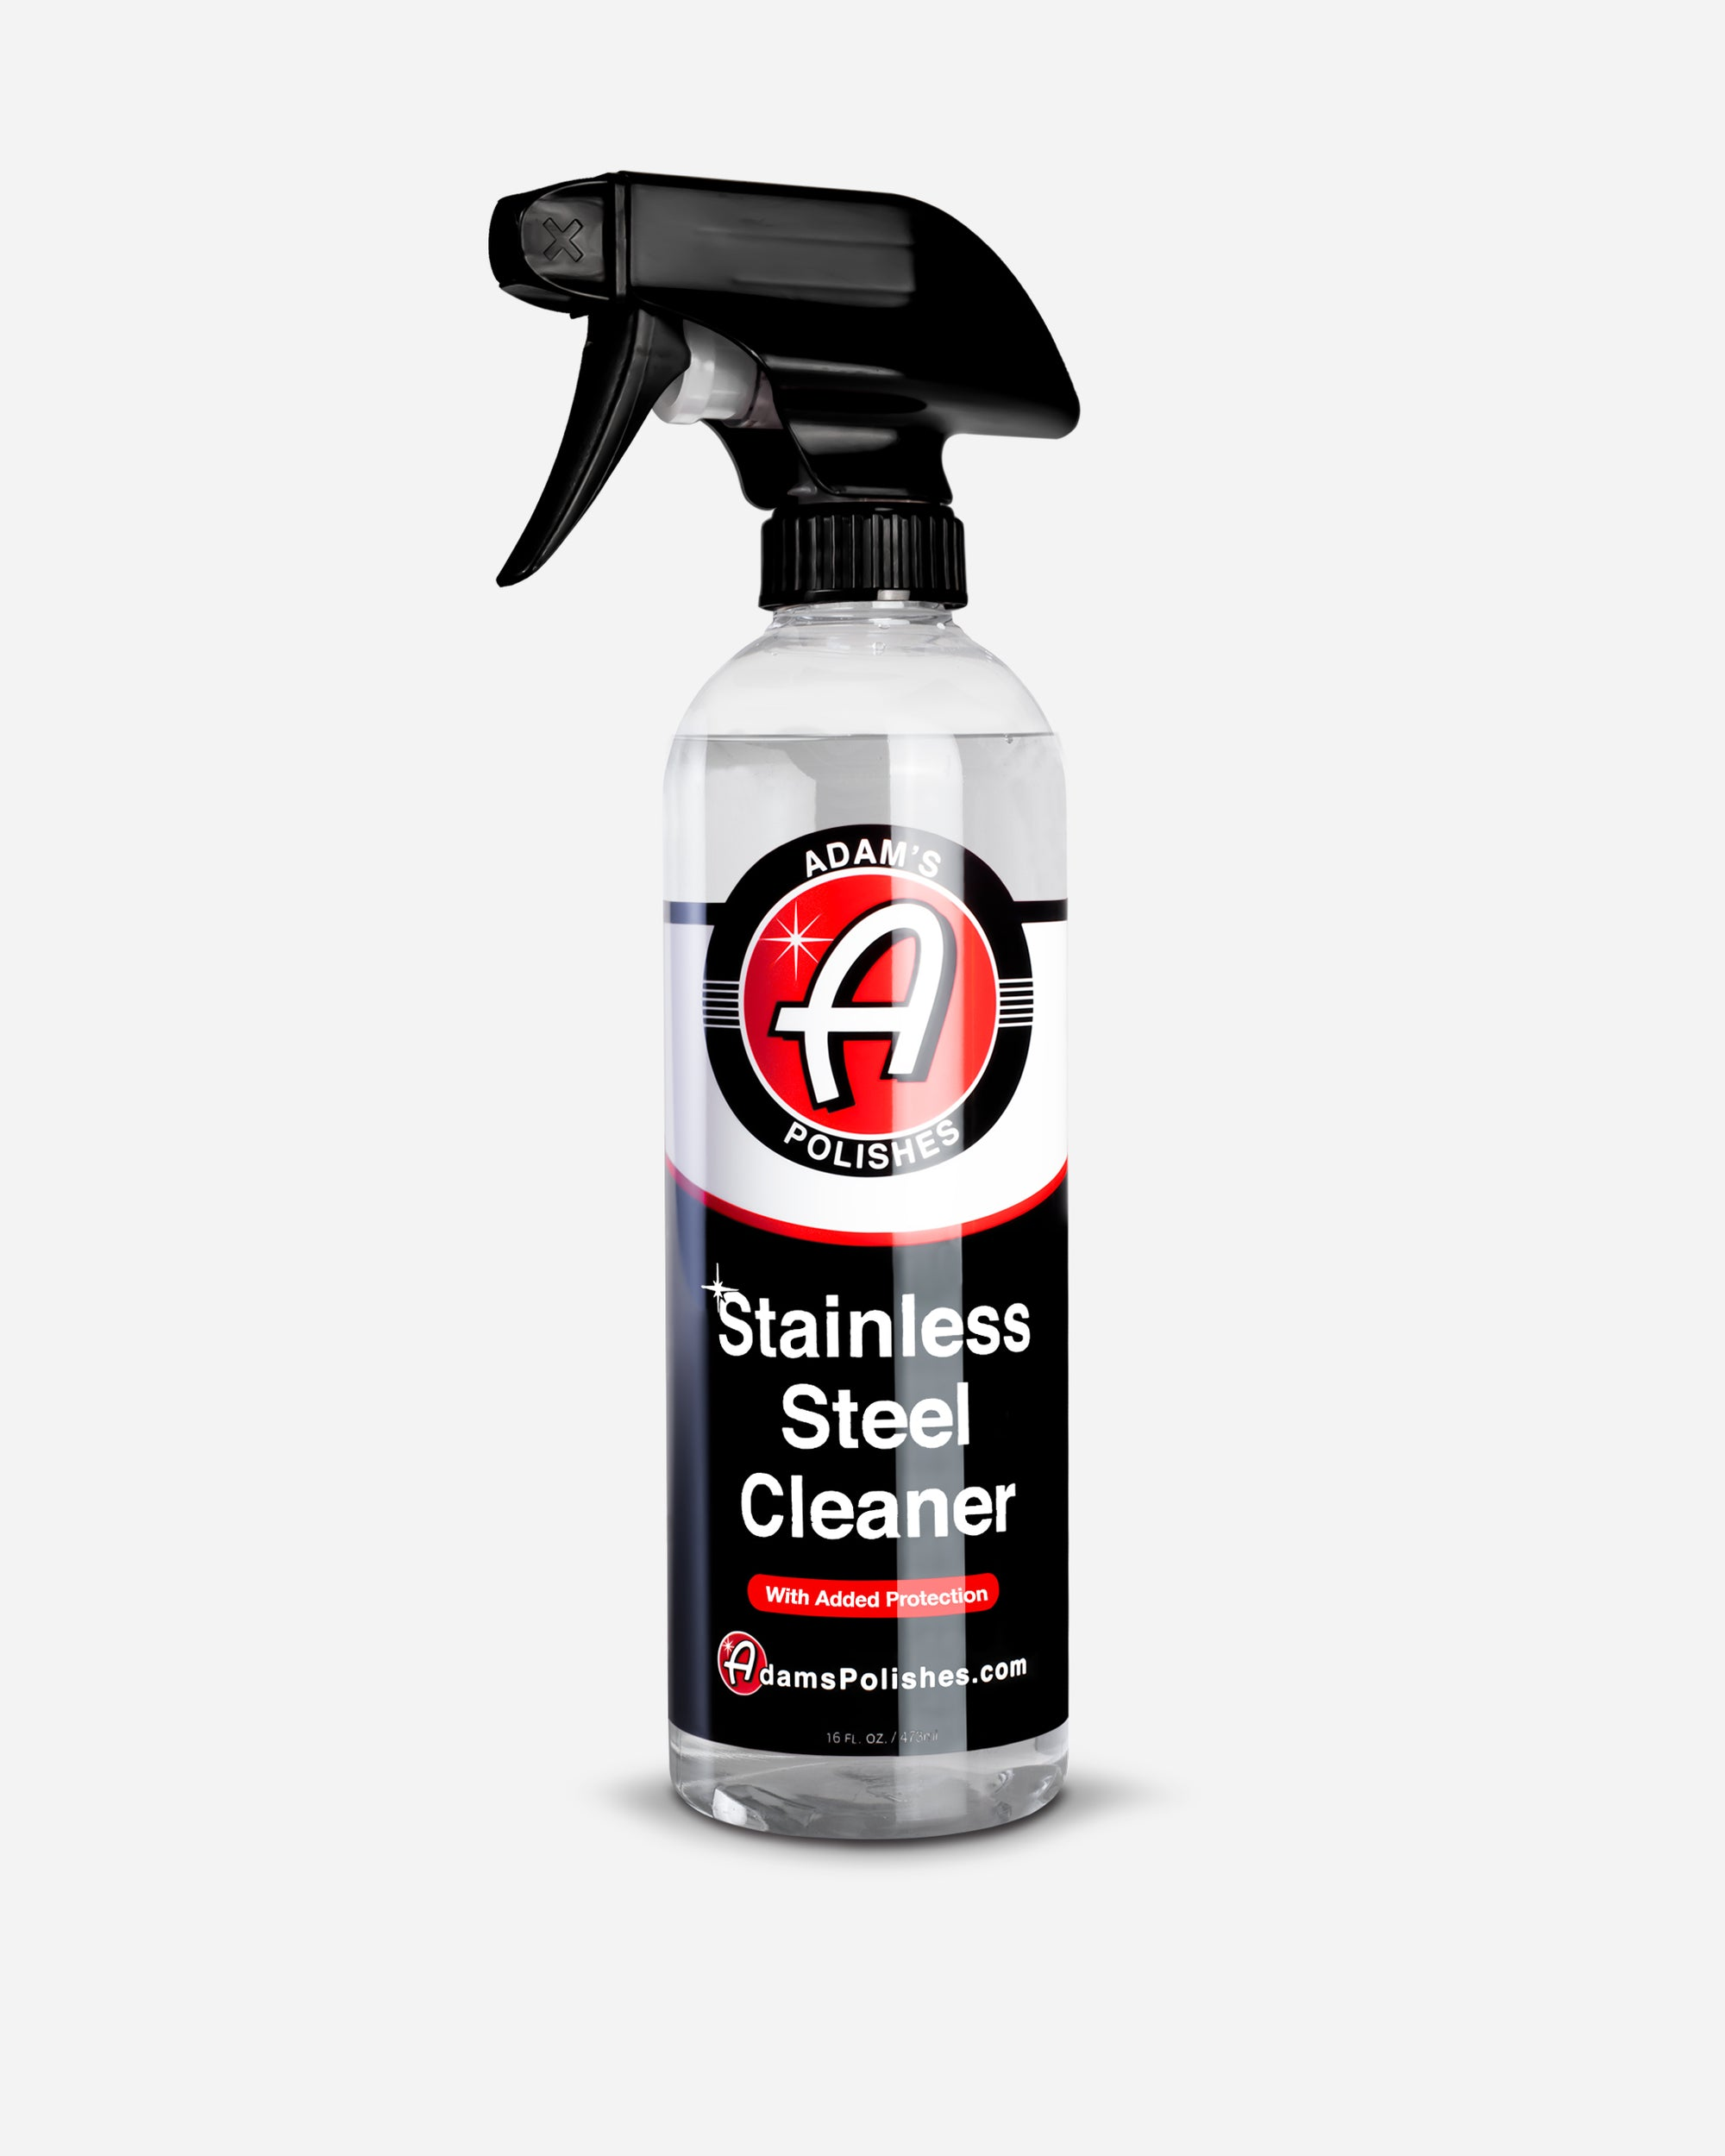 Adam's Stainless Steel Cleaner